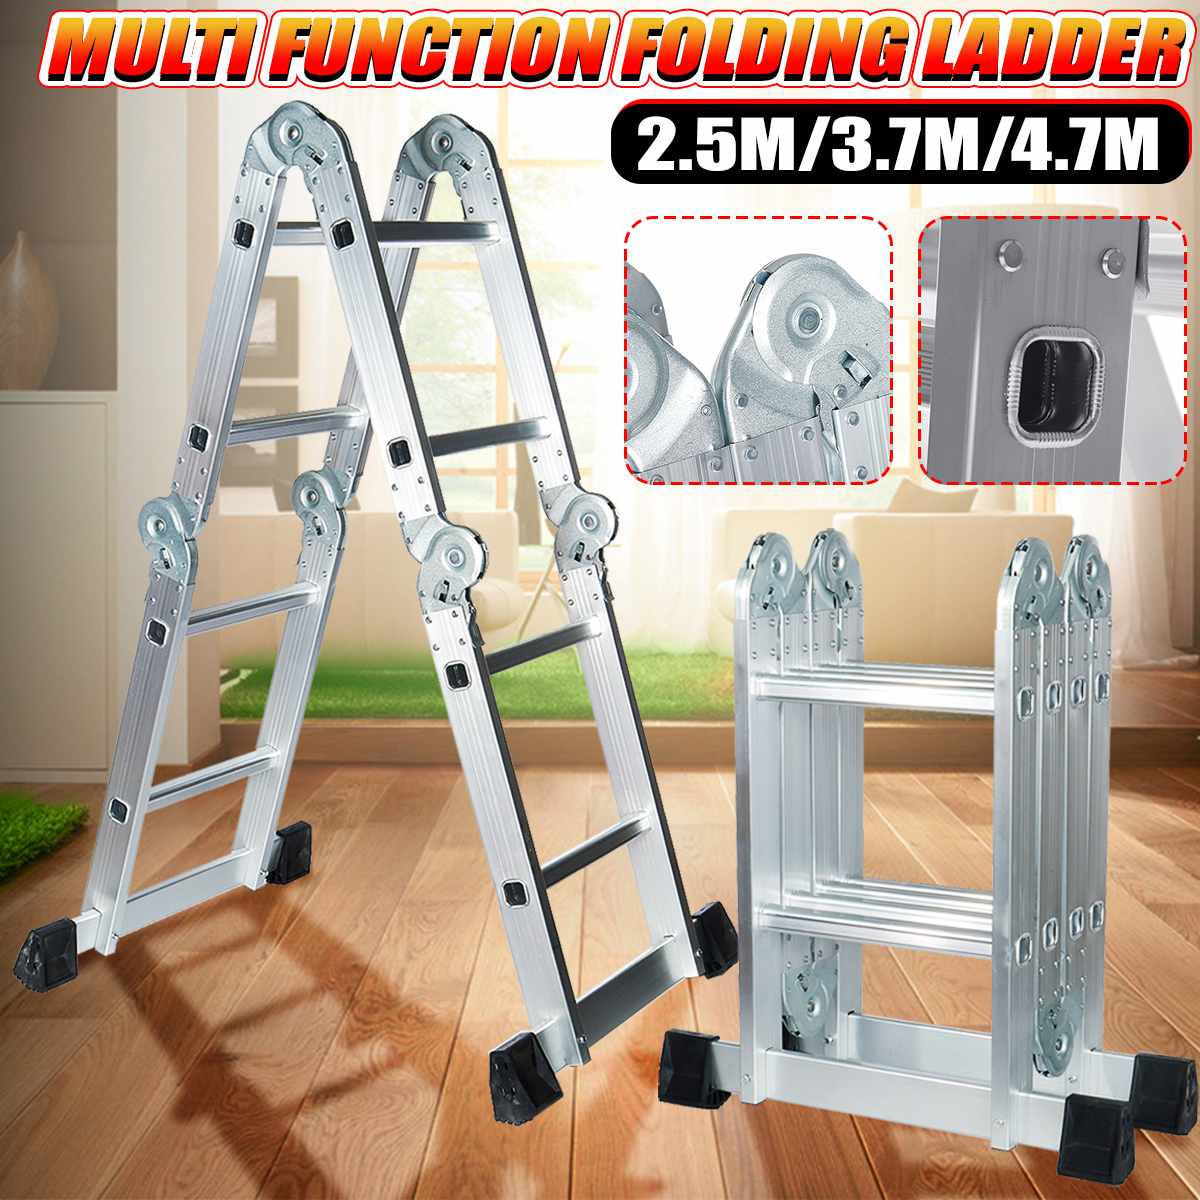 3.7m Telescopic Folding Ladder Step-Stand House Aluminium Ladders Telescoping Multi-Purpose Extension Folding Step Ladder